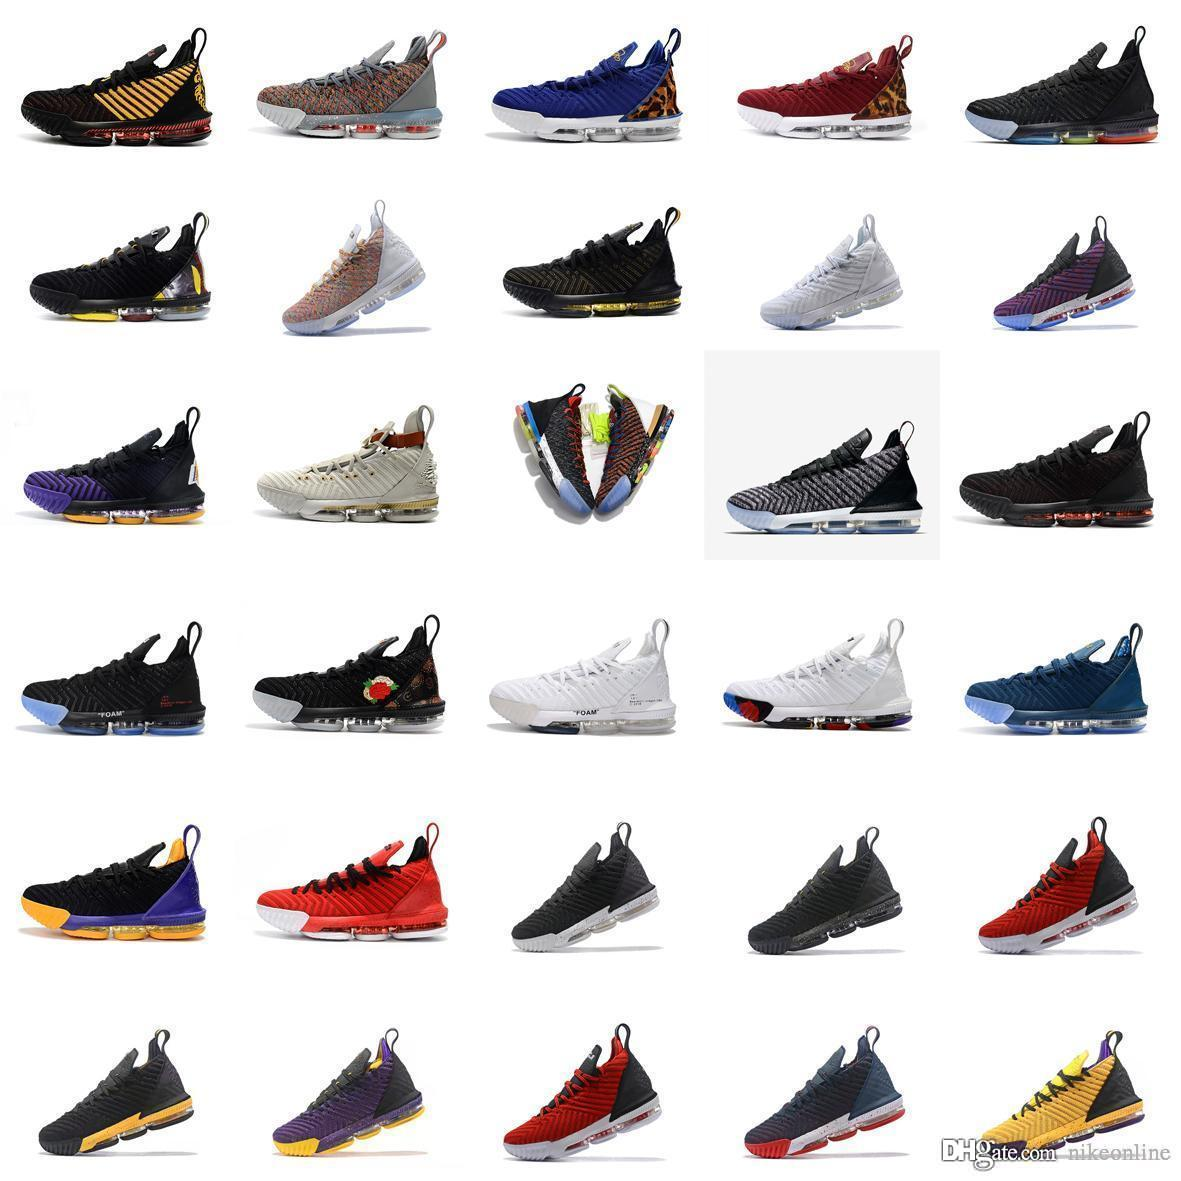 2019 Mens Lebron 16 Basketball Shoes Multi Color Fruity Pebbles Gold Black  Purple Leopard Red Boys Girls Women Youth Kids Sneakers Boots With Box From  ... a5ca3fb84